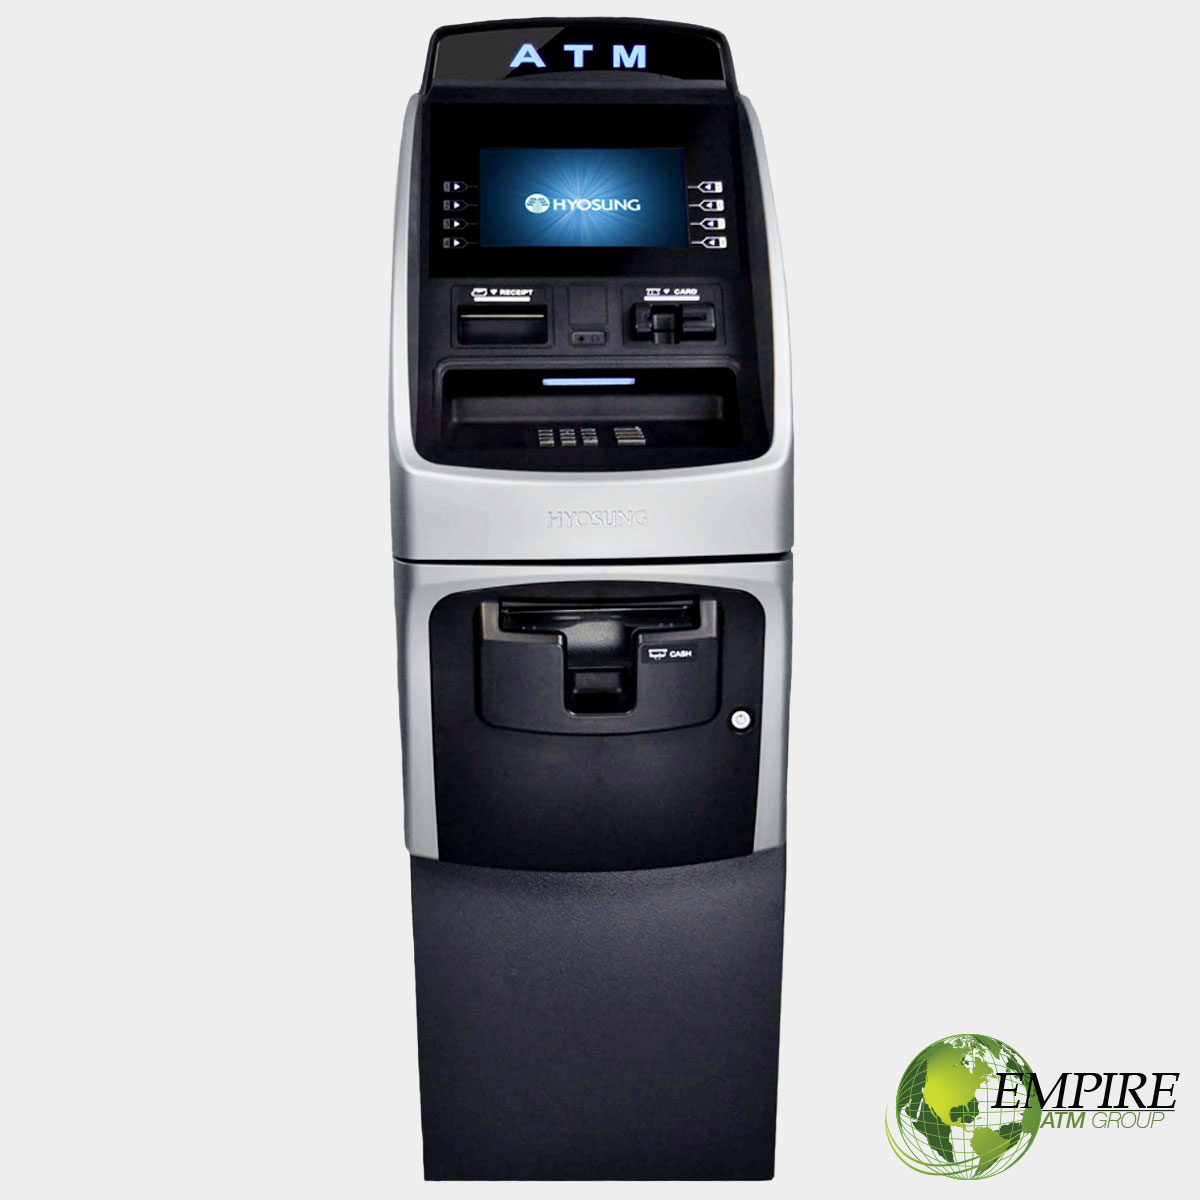 hyosung atm manual download